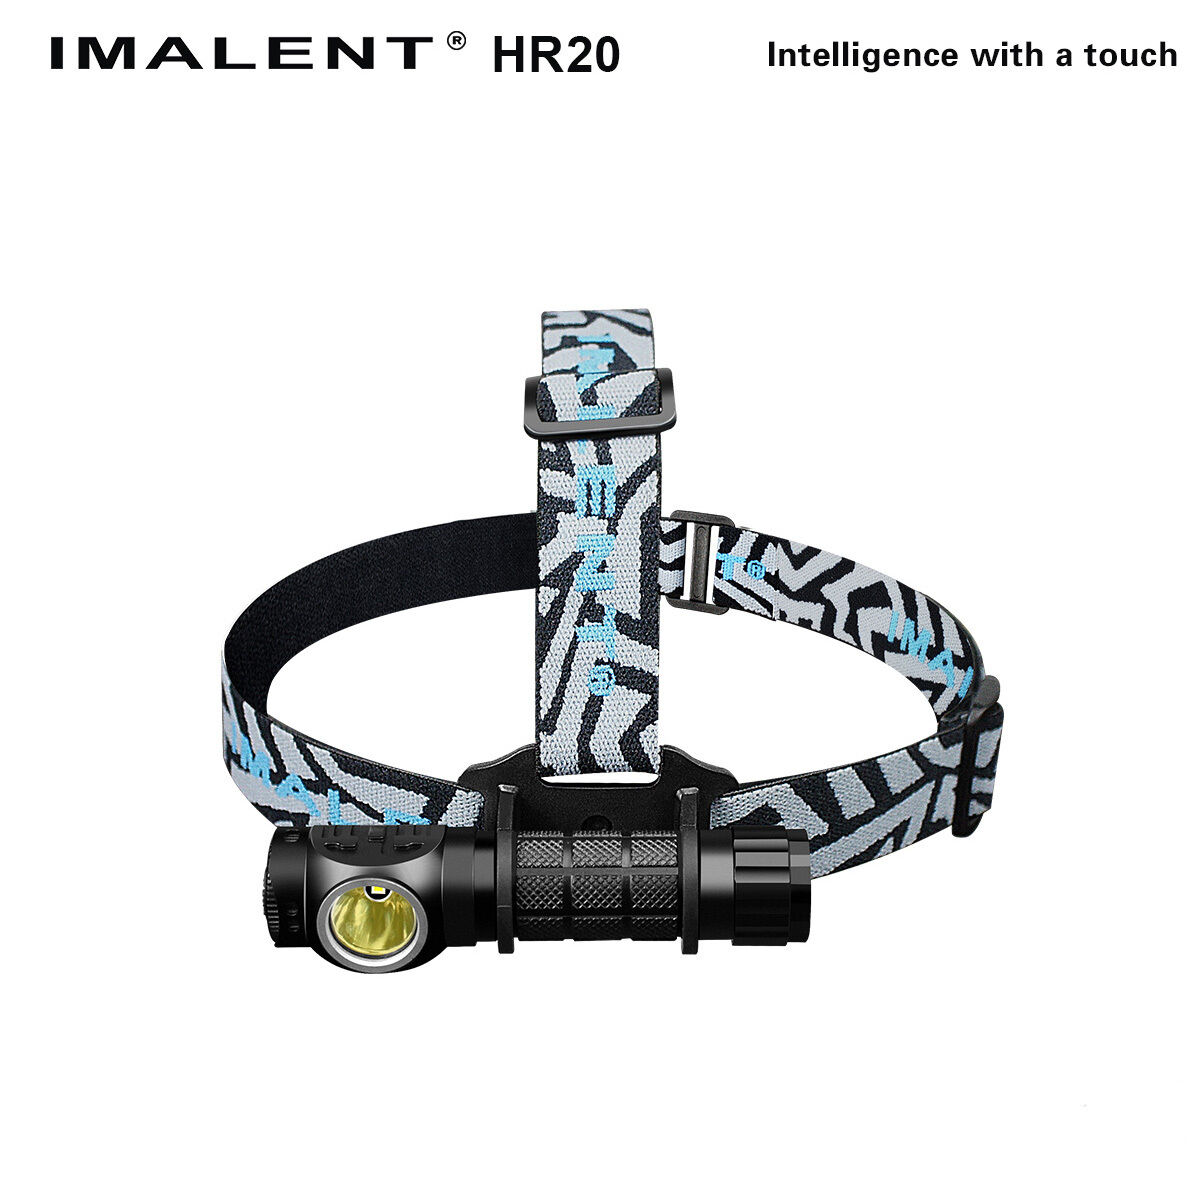 IMALENT  HR20 1000 Lumens cool white Headlight With USB Direct Charge battery  factory outlet store